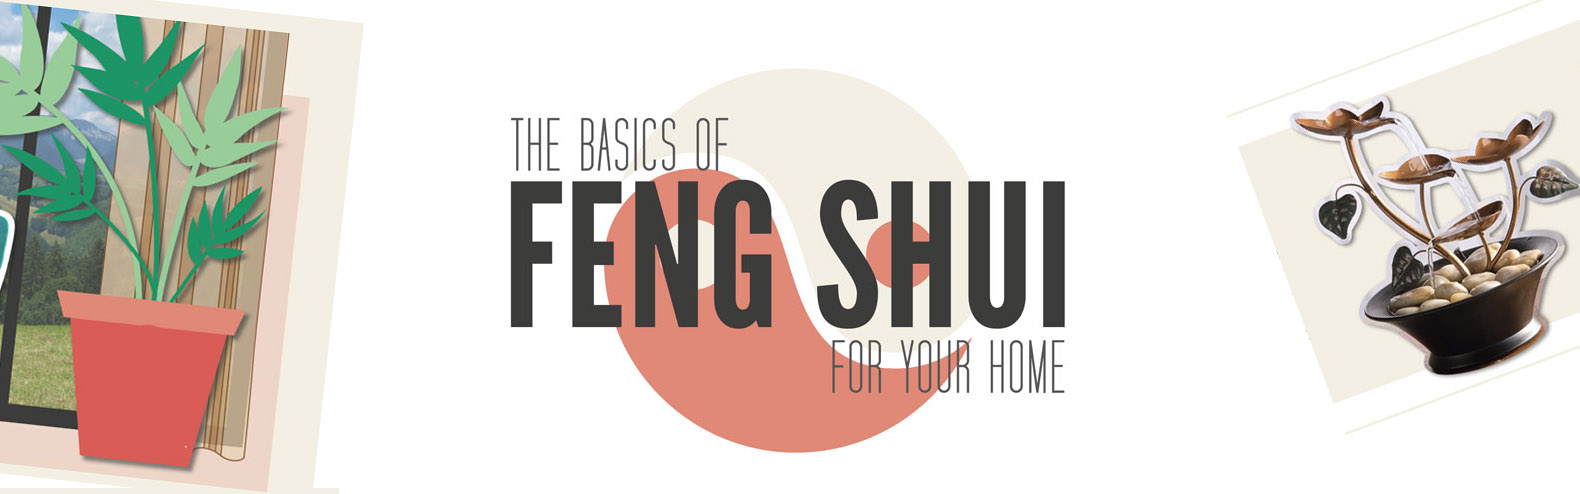 INFOGRAPHIC Your Basic Guide To Feng Shui For The Home